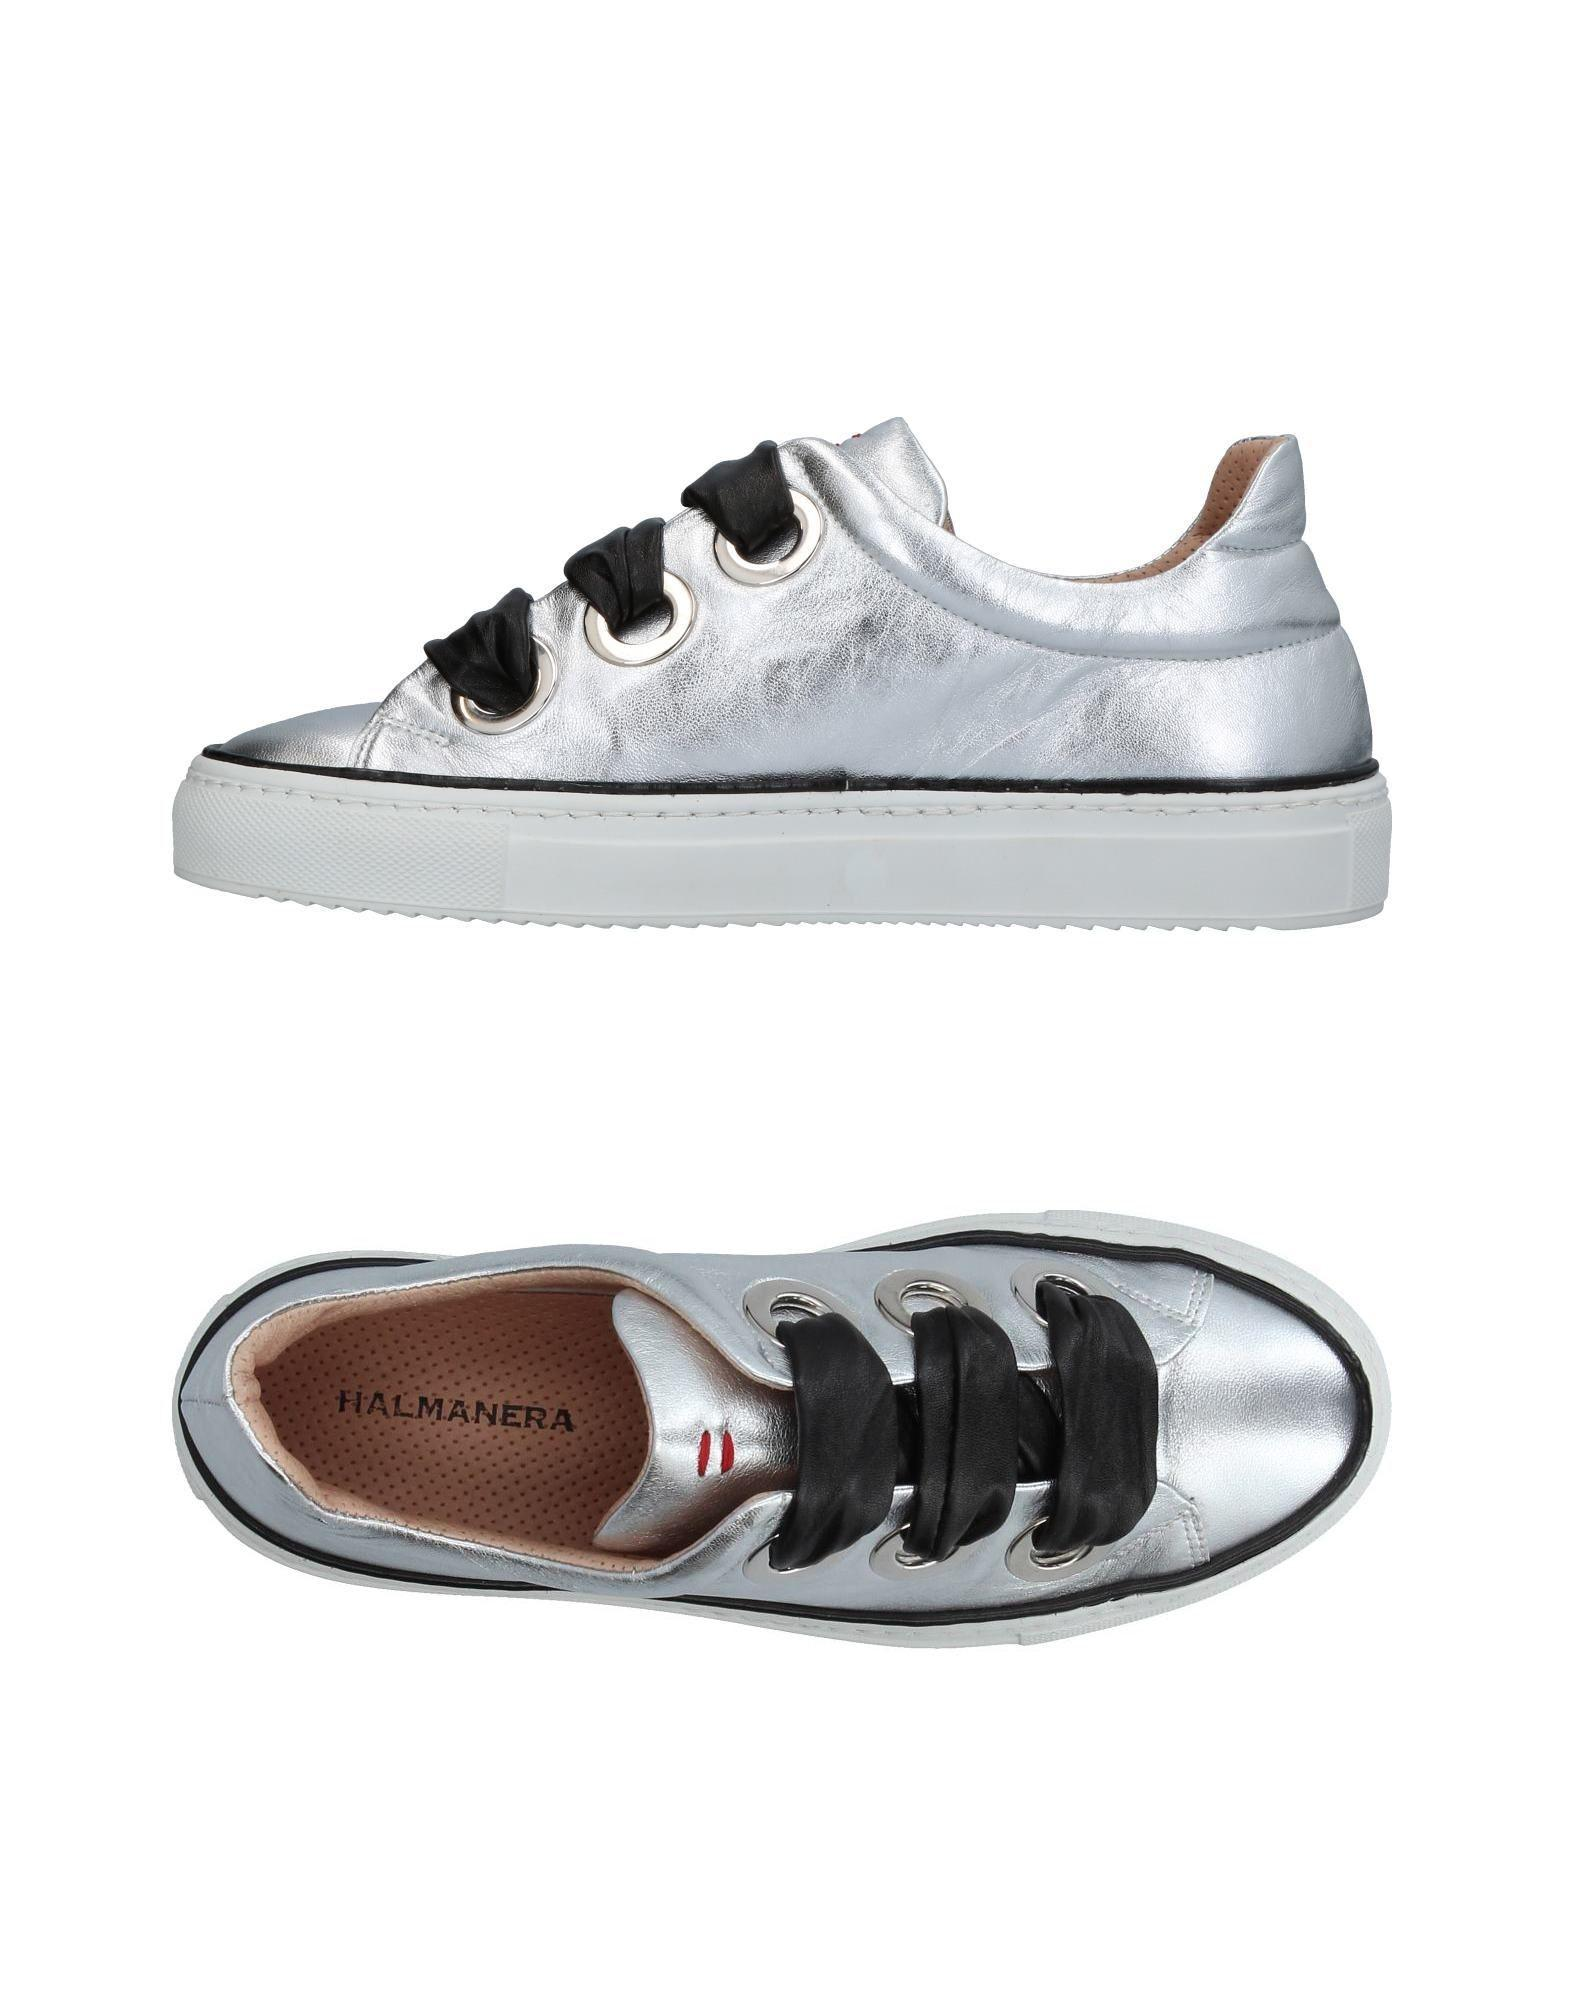 FOOTWEAR - Low-tops & sneakers Halmanera